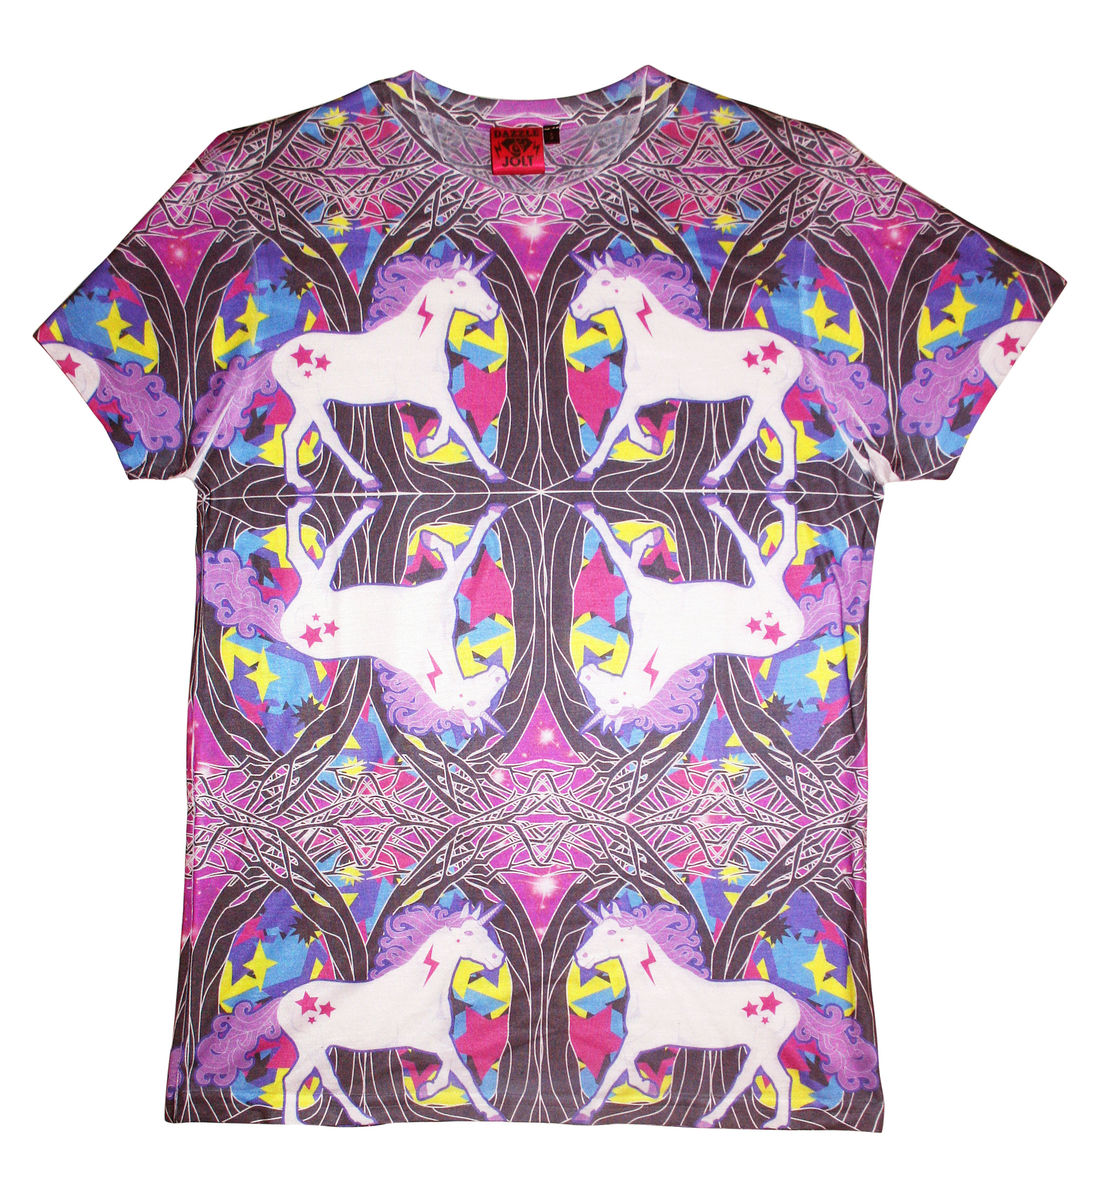 Unicorn Dreams T-Shirt - product images  of